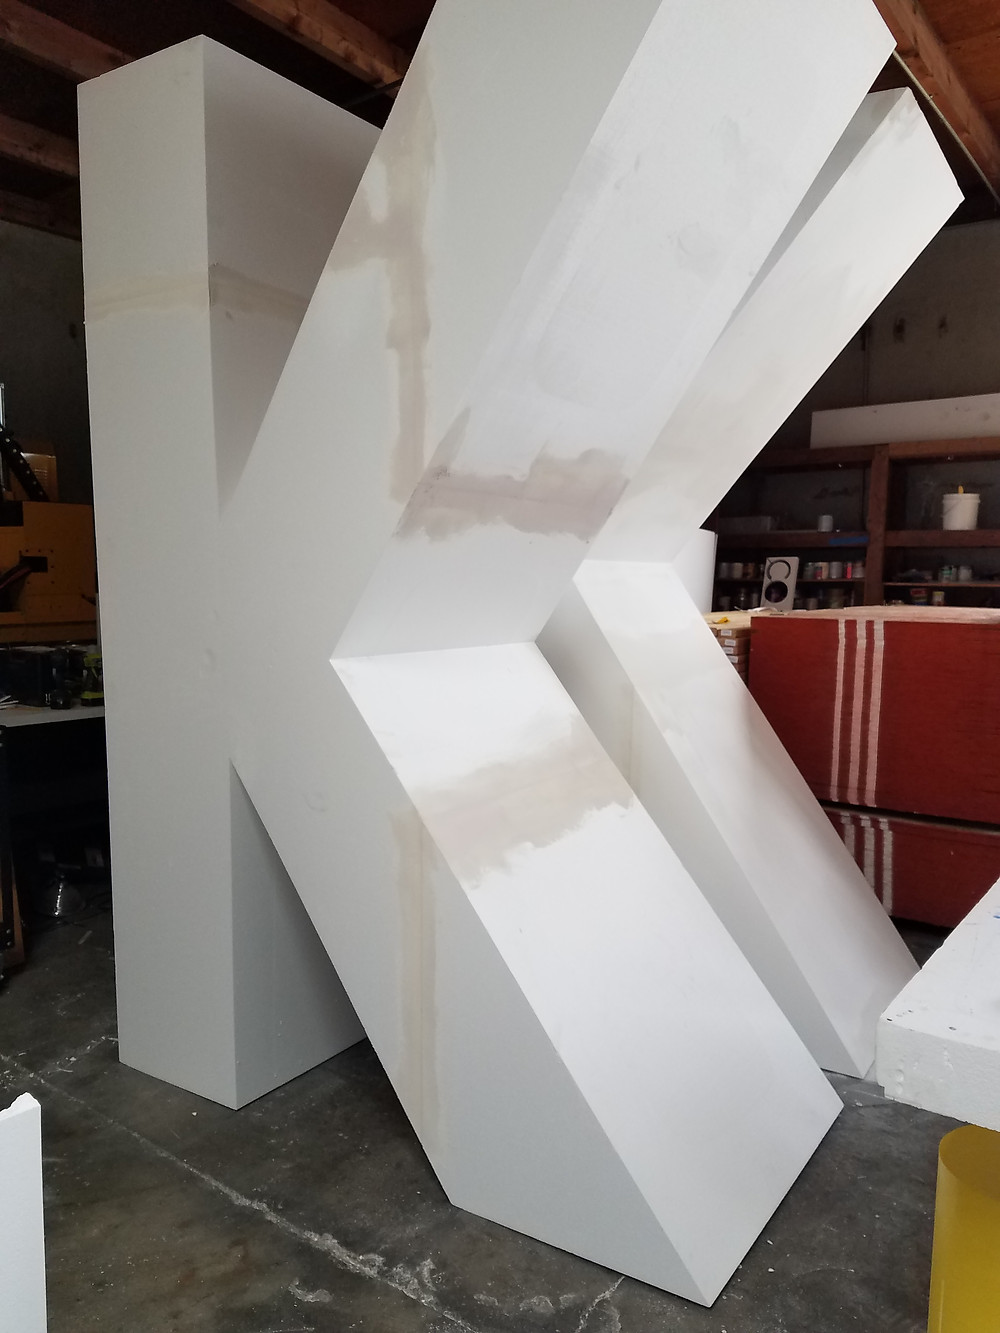 Oversized foam letter made in 2 sections